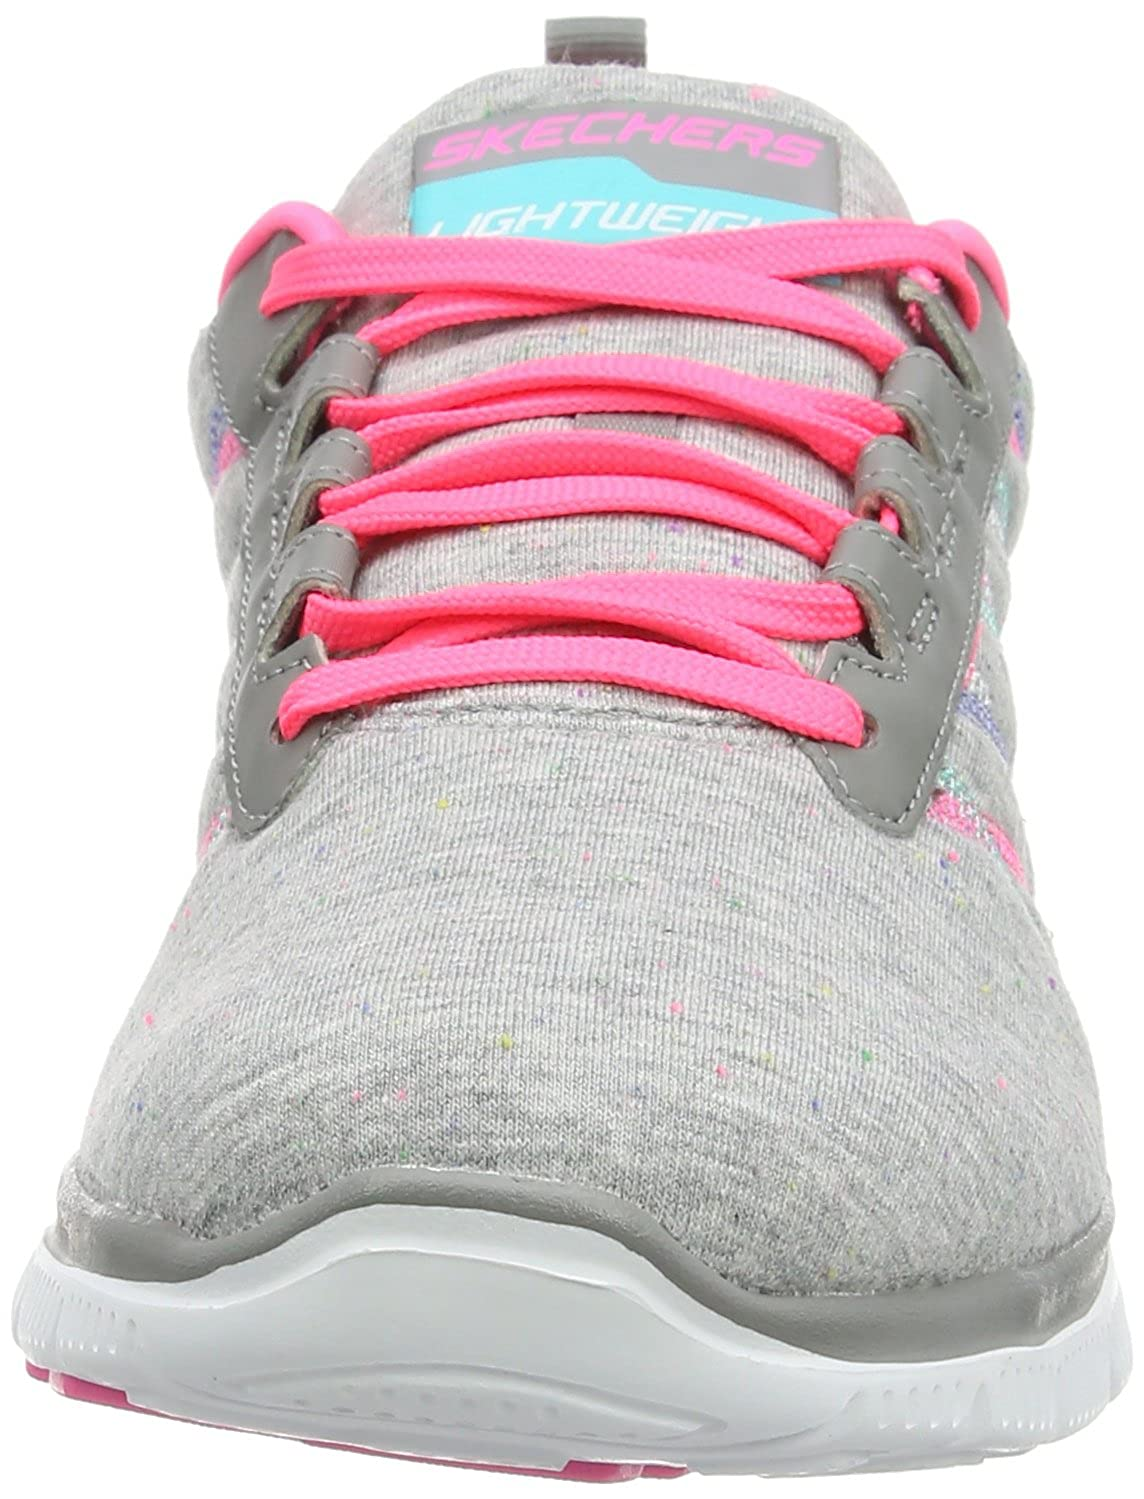 Skechers Sport Women's Flex Appeal Heathered 12065 Fashion Sneaker